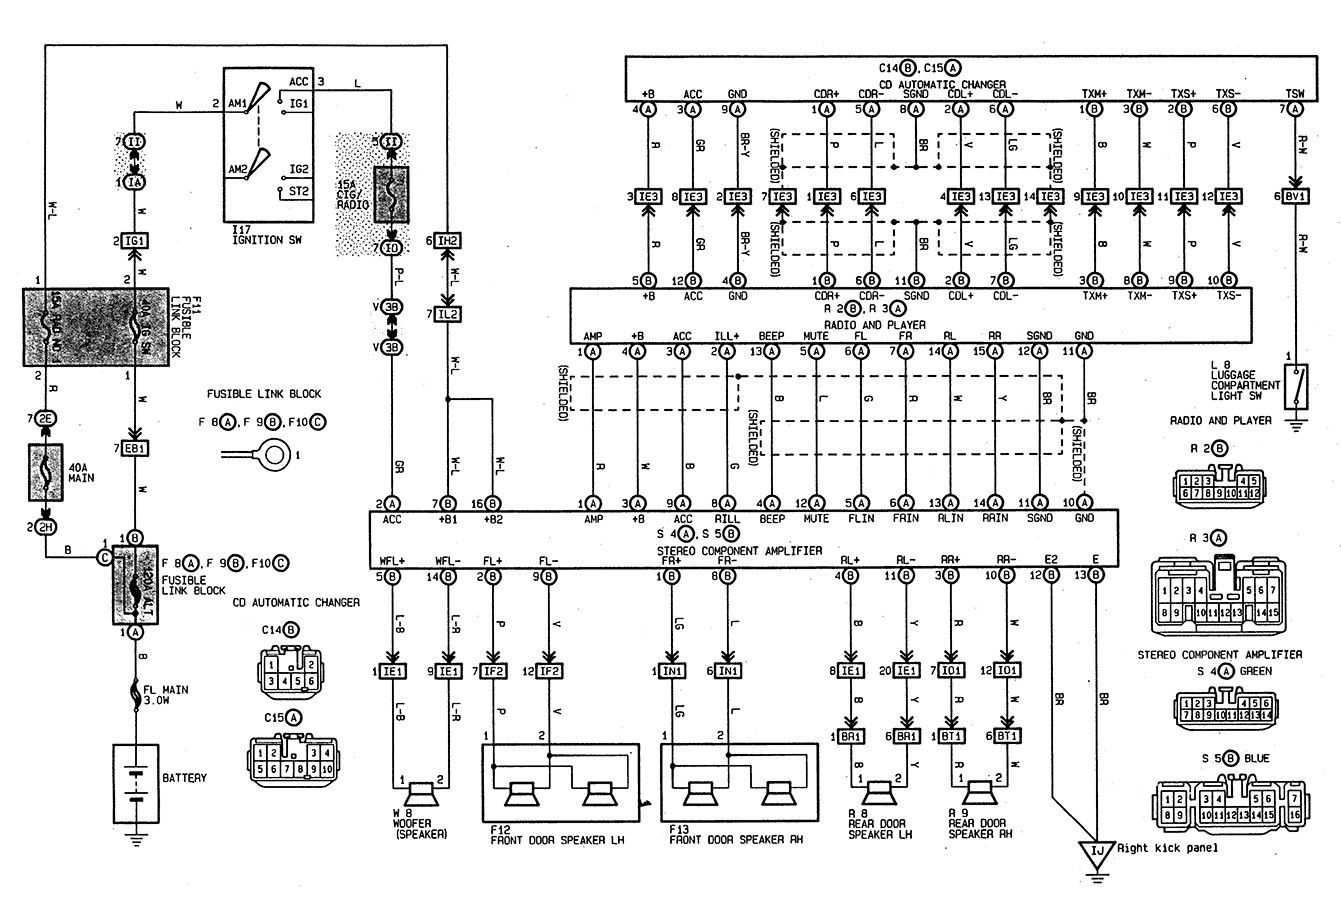 2002 Toyota 4runner Stereo Wiring Diagram Wiring Diagram Image Toyota  4Runner Engine Diagram 1997 Toyota 4runner Radio Wire Diagram